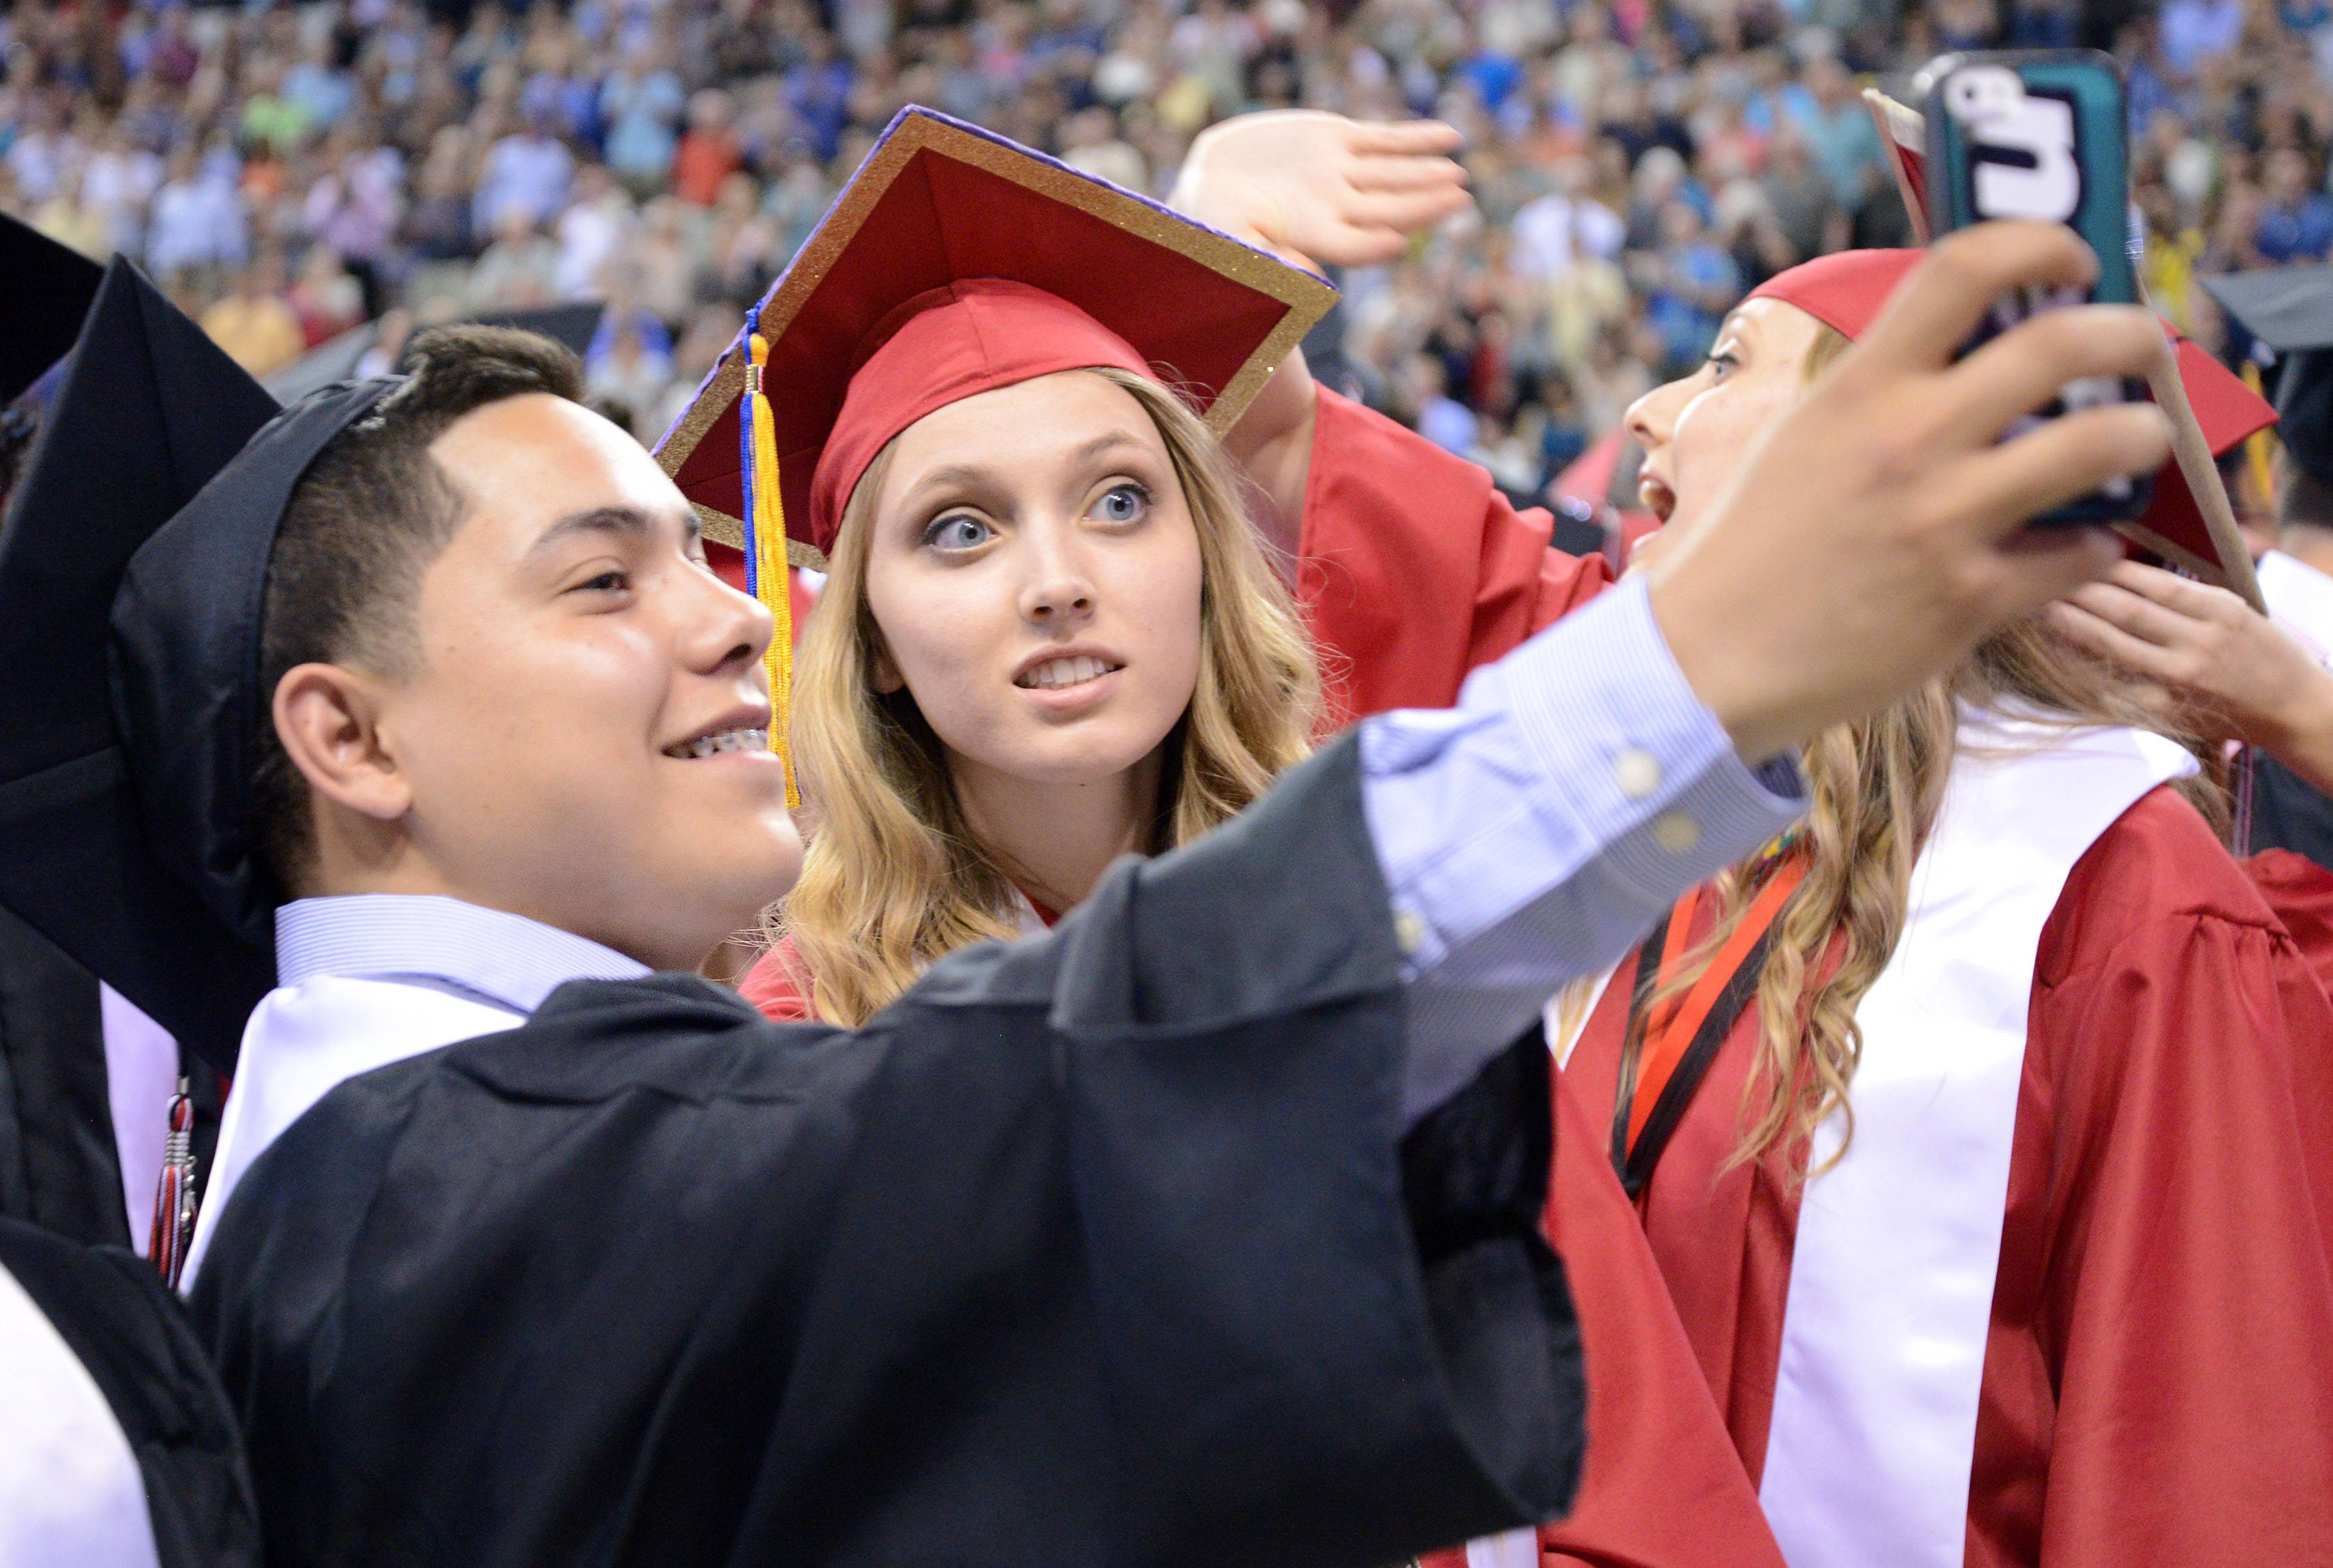 Alan Beltran and Rachel Bednarczyk take a selfie as they are pronounced graduates at the end of Huntley High School's commencement ceremony at the Sears Centre in Hoffman Estates on Saturday, May 31.